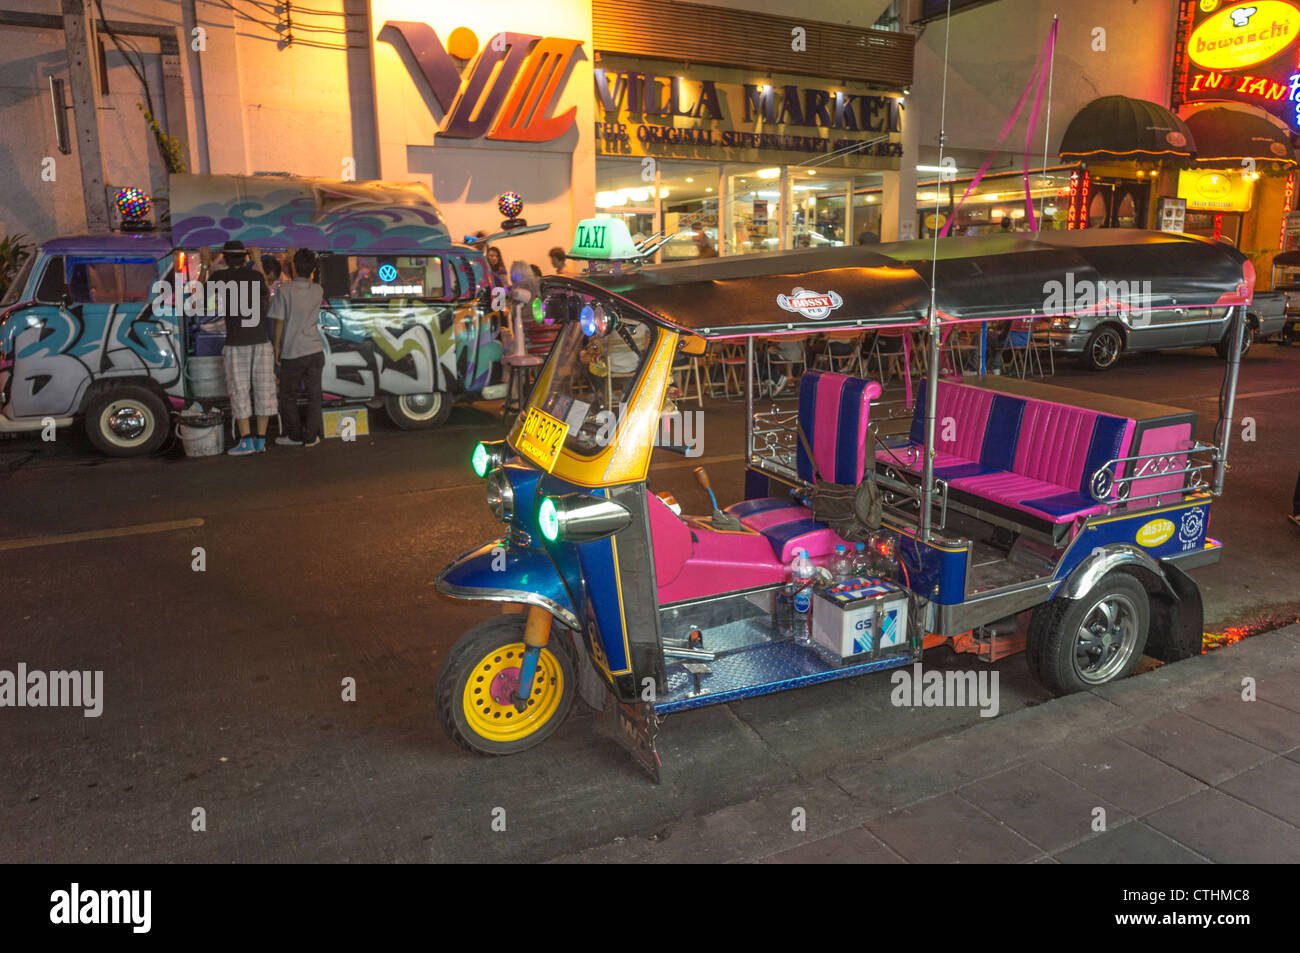 Suhkumvit street life at night, Tuk Tuk, Cocktail Bar in VW Bus, Bangkok, Thailand - Stock Image